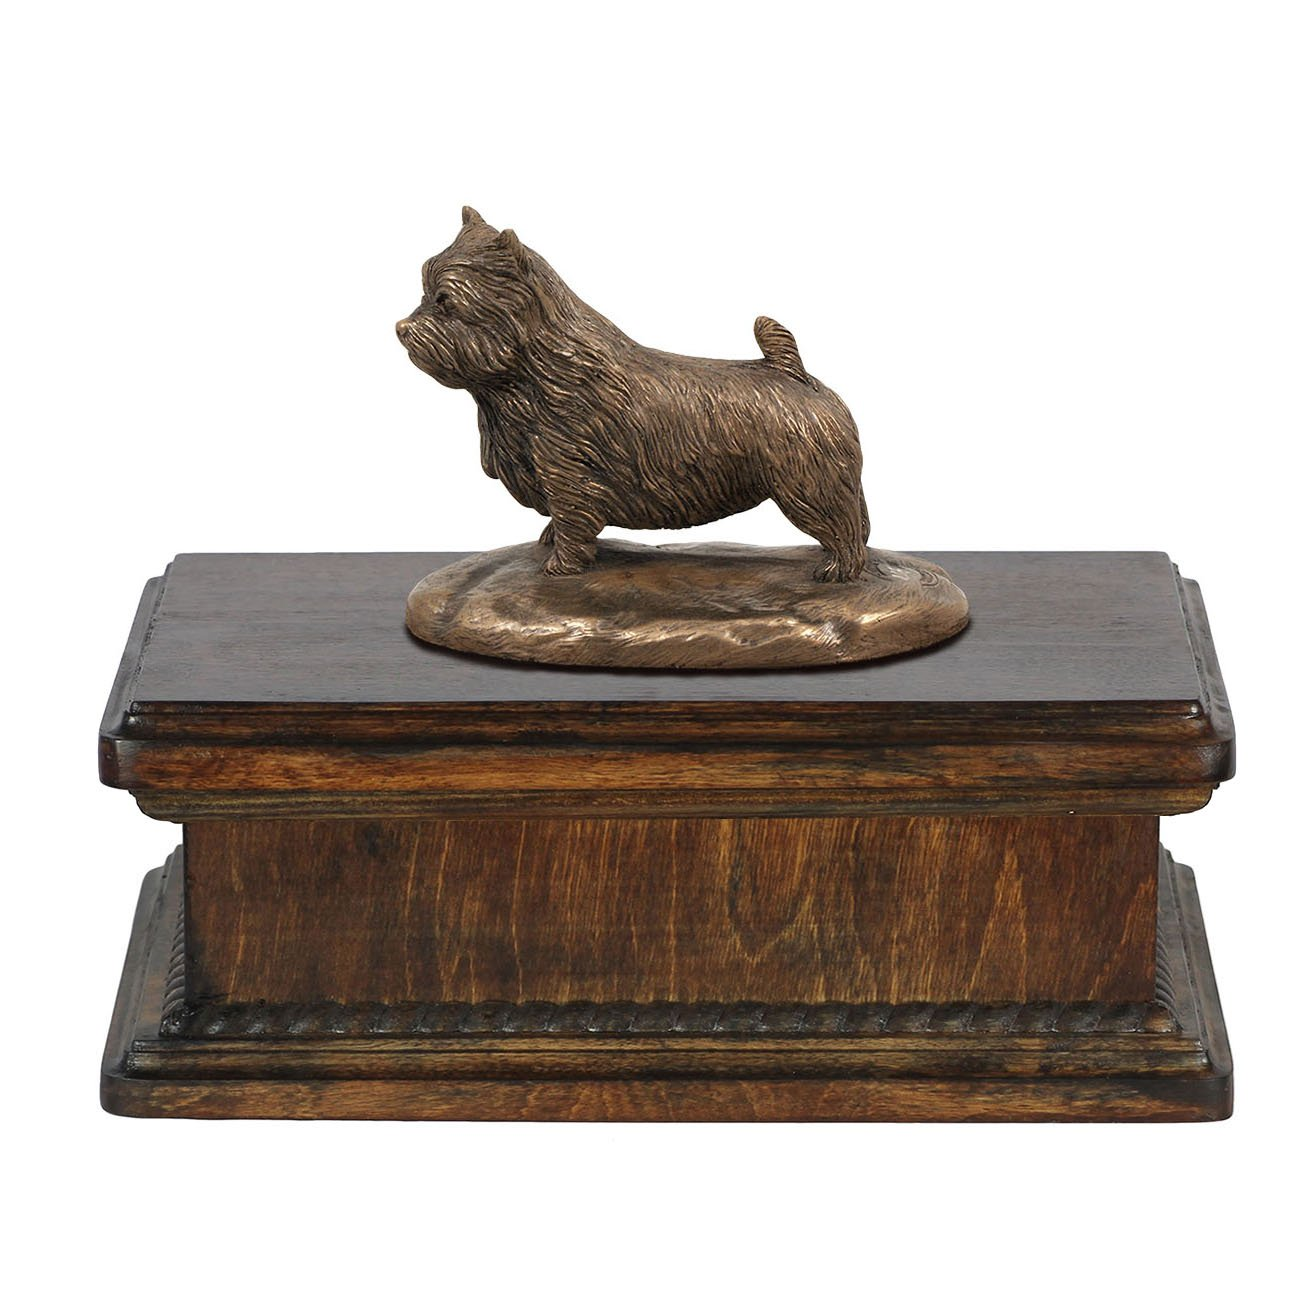 Norwich Terrier, memorial, urn for dog's ashes, with dog statue, exclusive, ArtDog